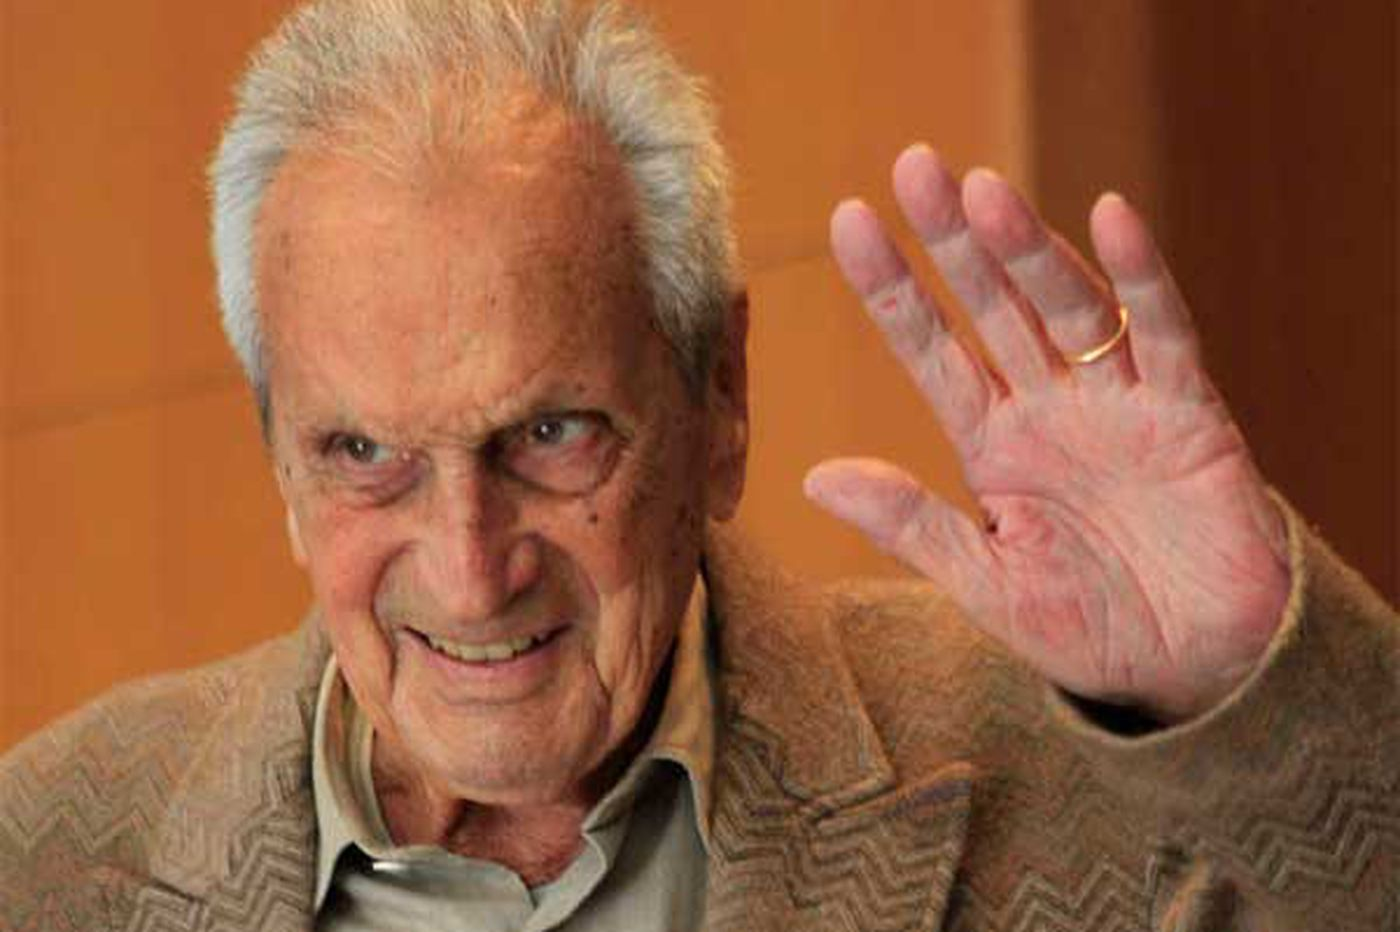 Ottavio Missoni, 92, fashion patriarch